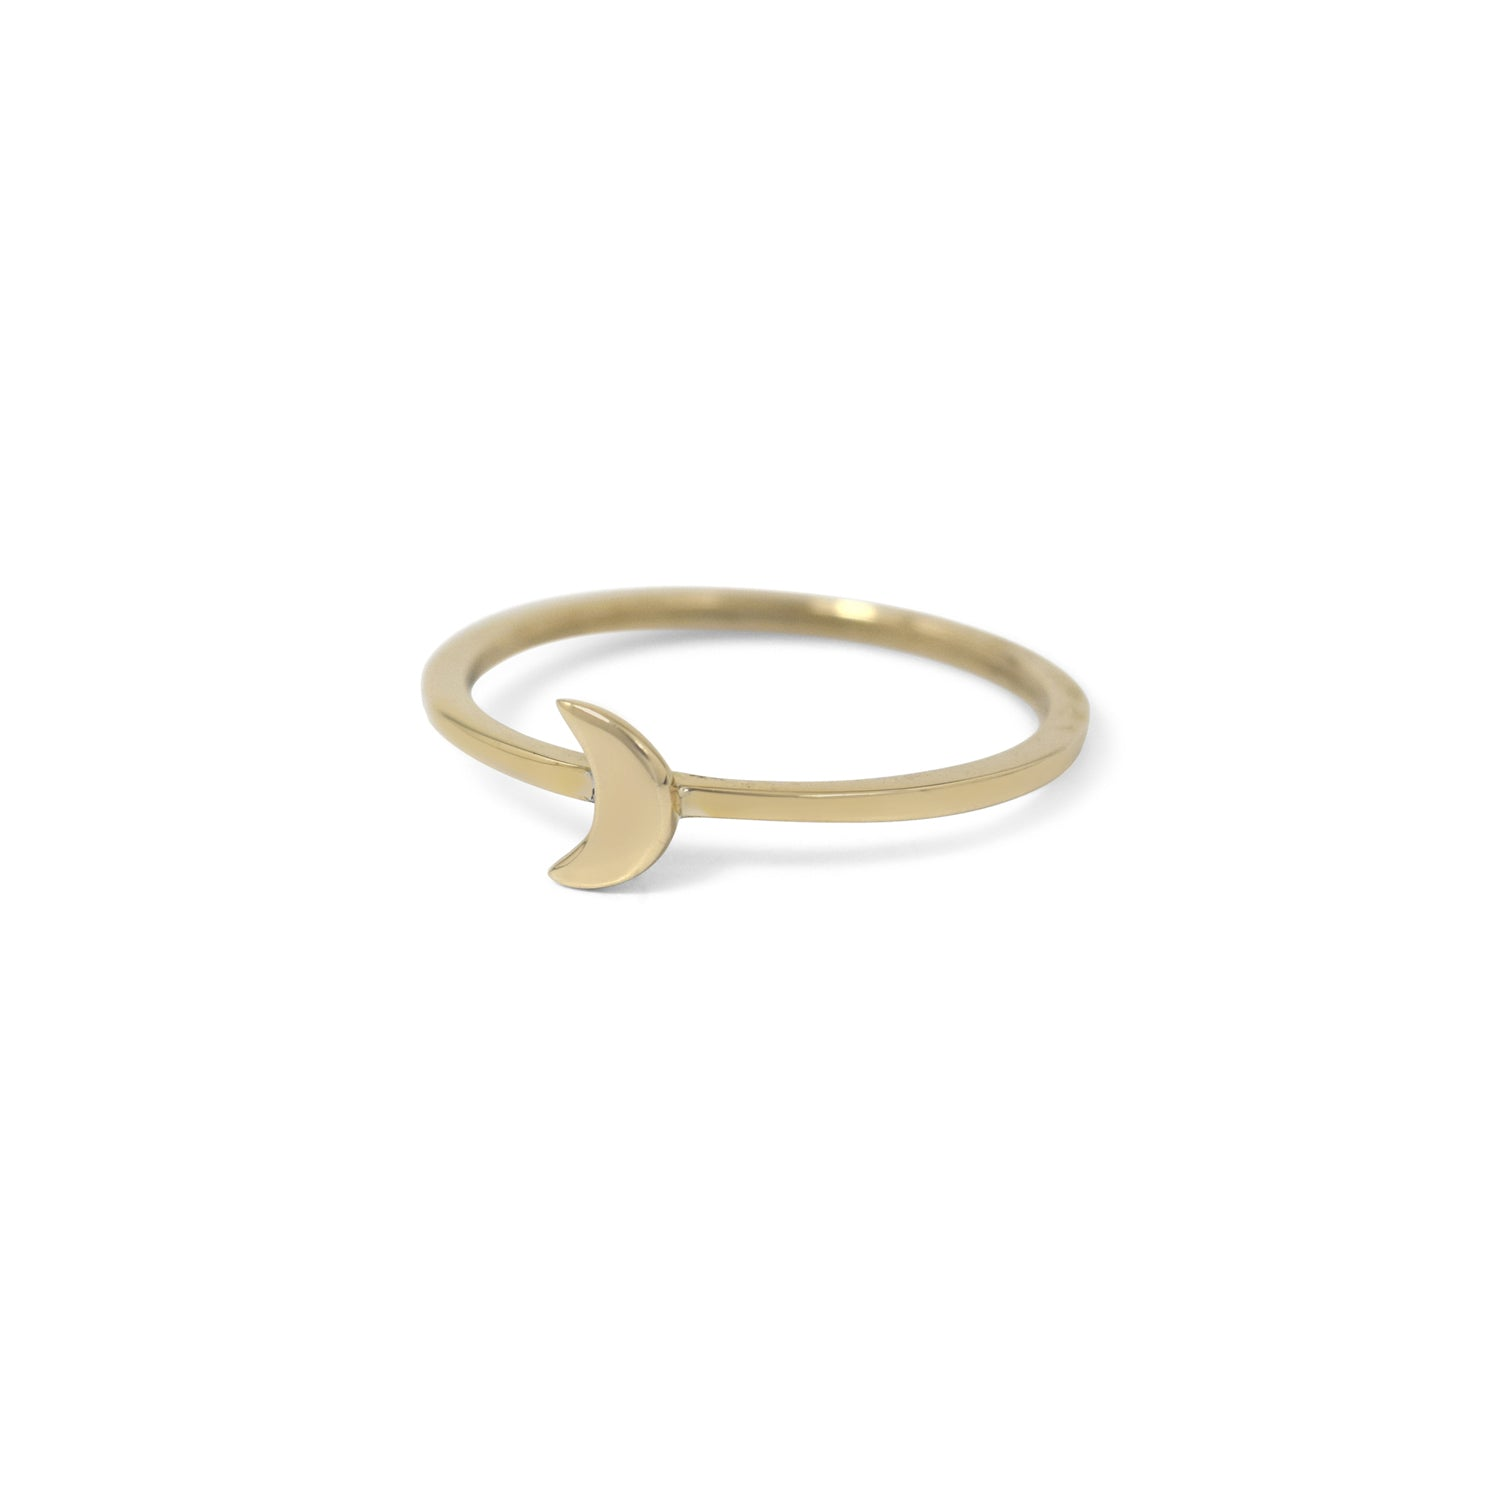 Celestial Moon Stacking Ring - Lissa Bowie